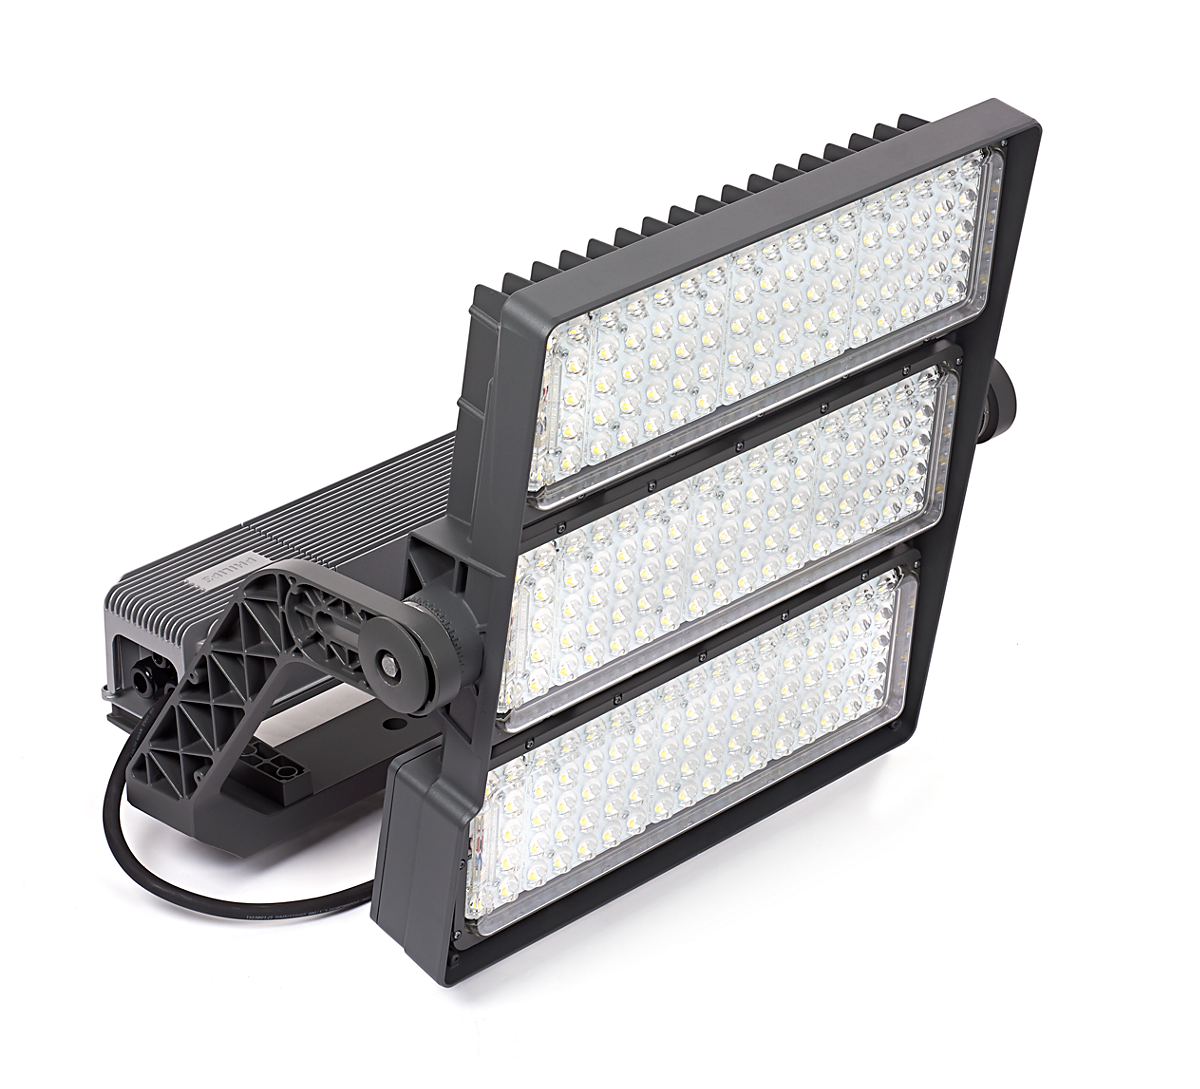 OptiVision LED gen 3